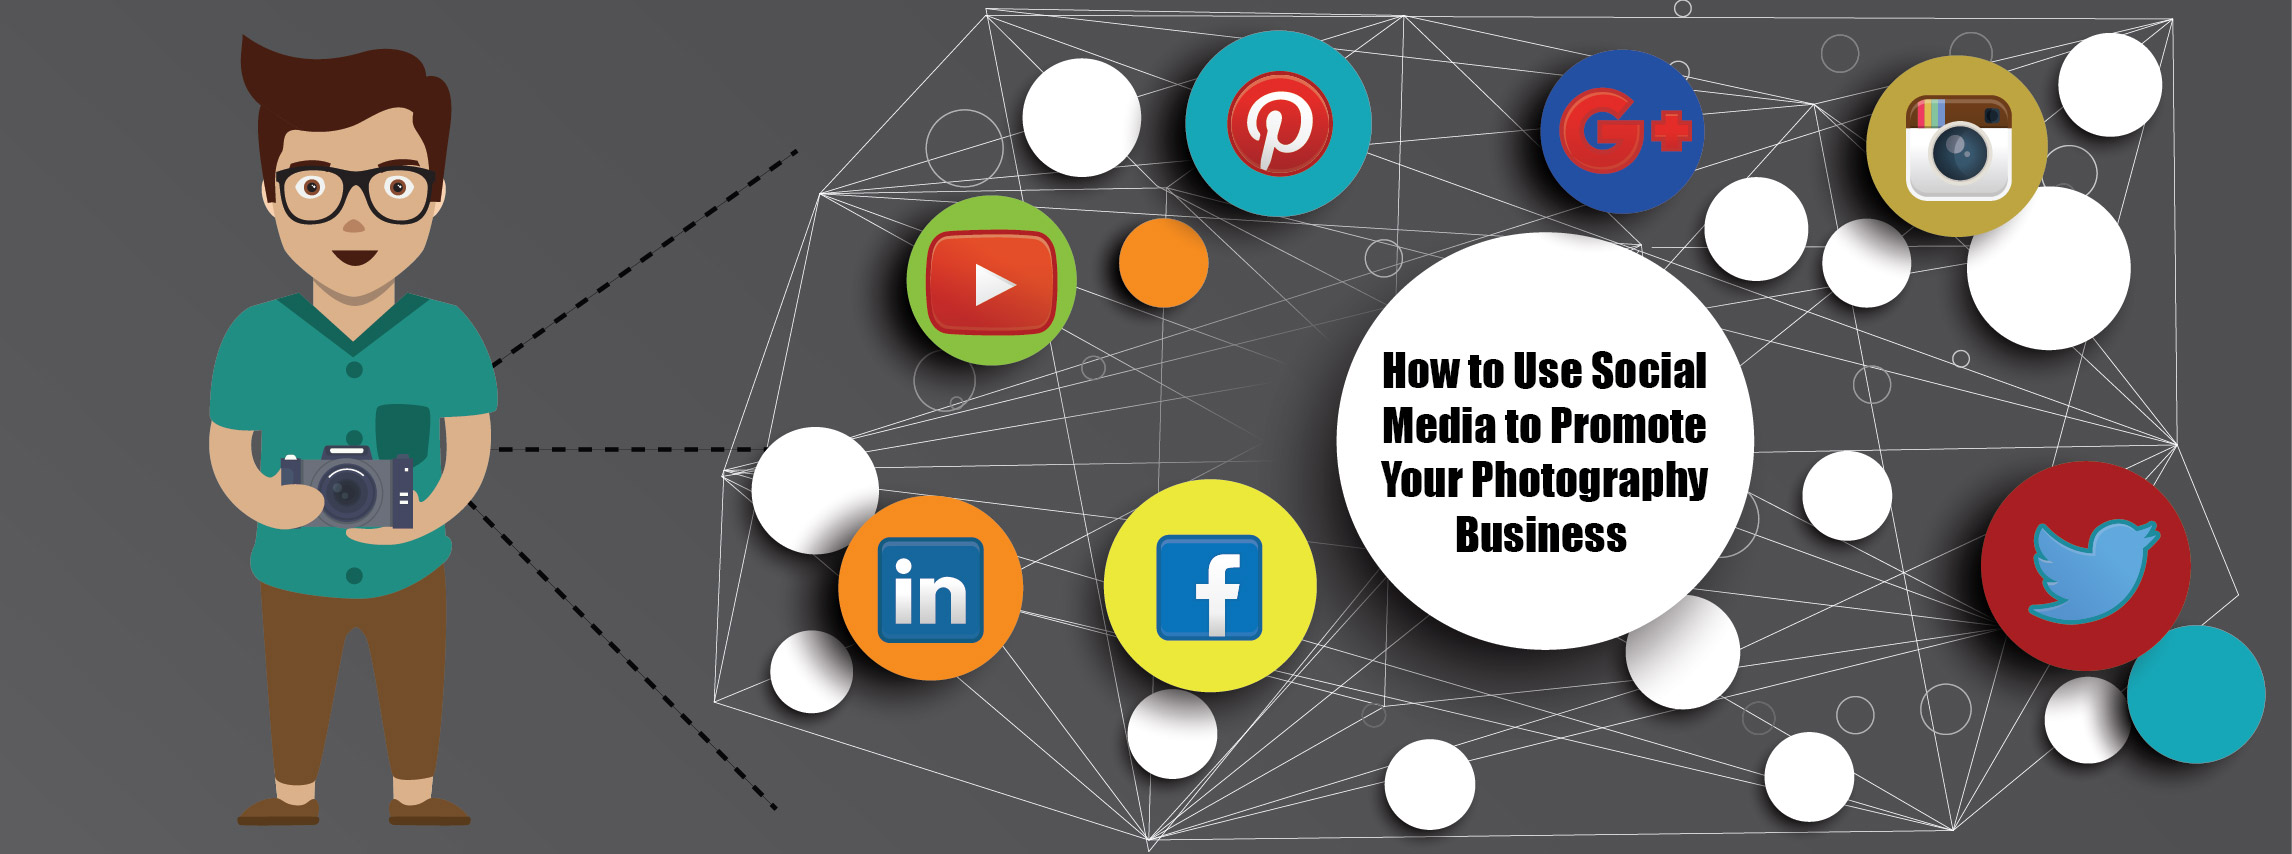 How-to-Use-Social-Media-to-your-Photography-Business.jpg